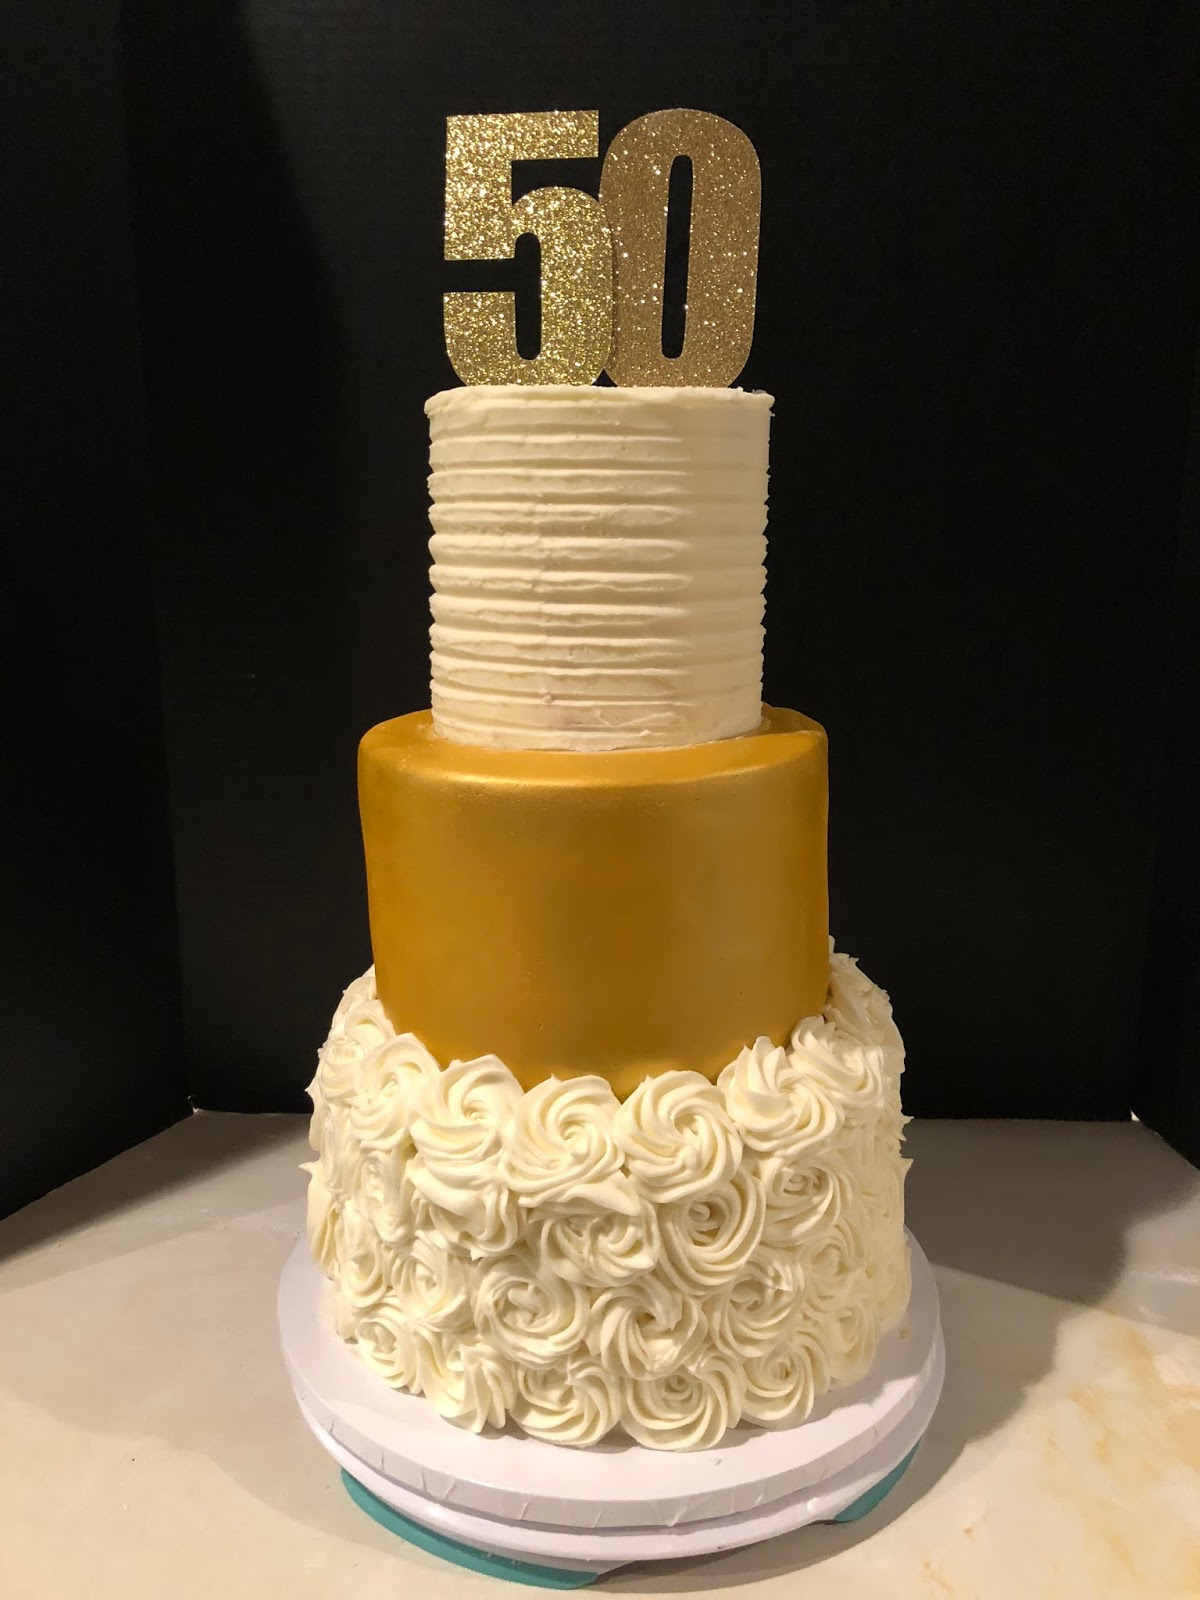 50th Wedding Anniversary Cakes.Frosted Insanity Gold 50th Wedding Anniversary Cake